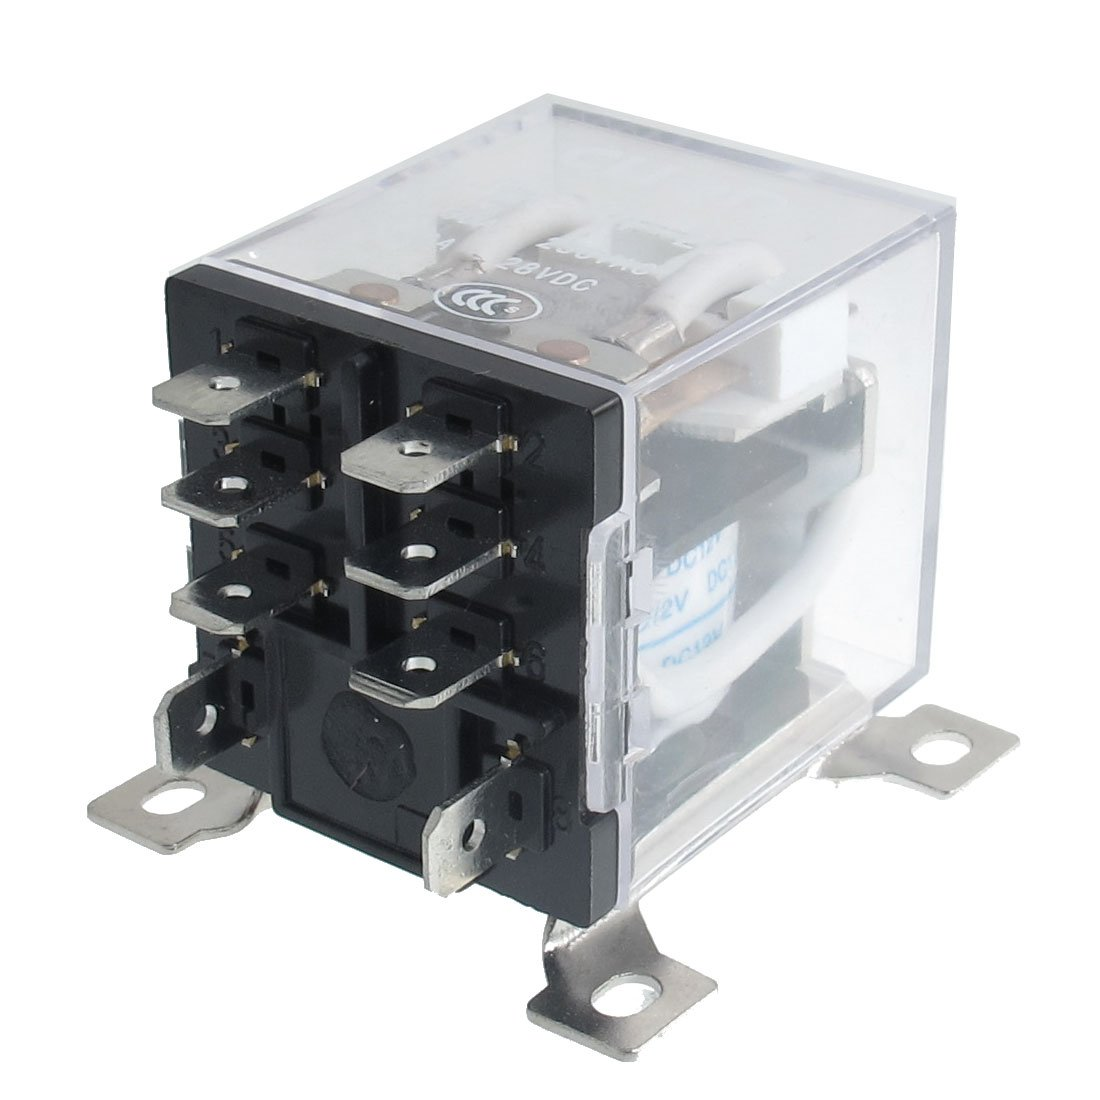 Jqx 12f 2z Dc 12v 30a Dpdt General Purpose Power Relay 8